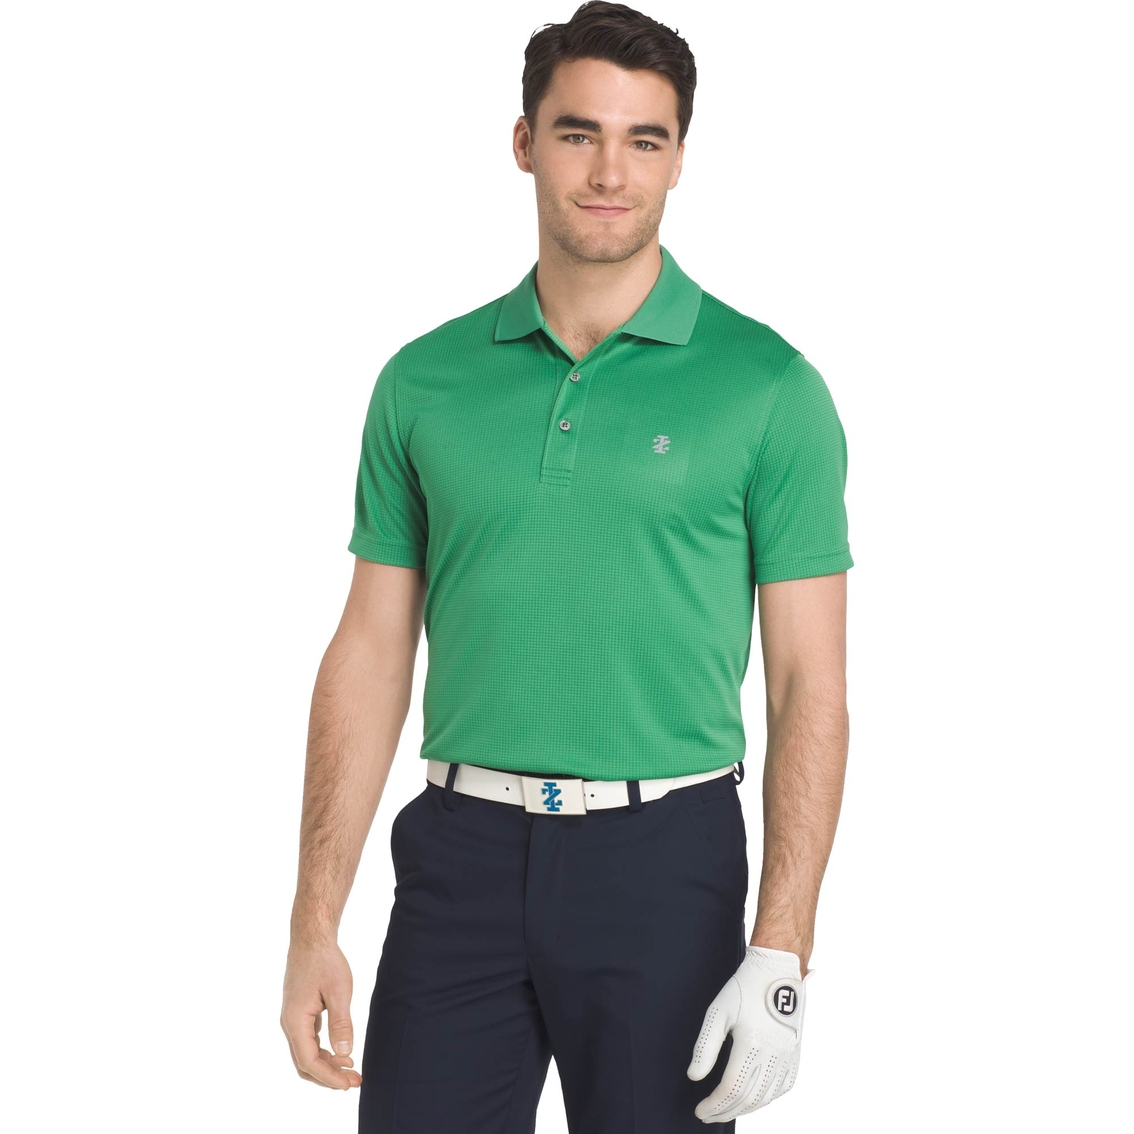 in stock limpid in sight fashion styles Izod Champion Grid Golf Polo   Polos   Apparel   Shop The ...